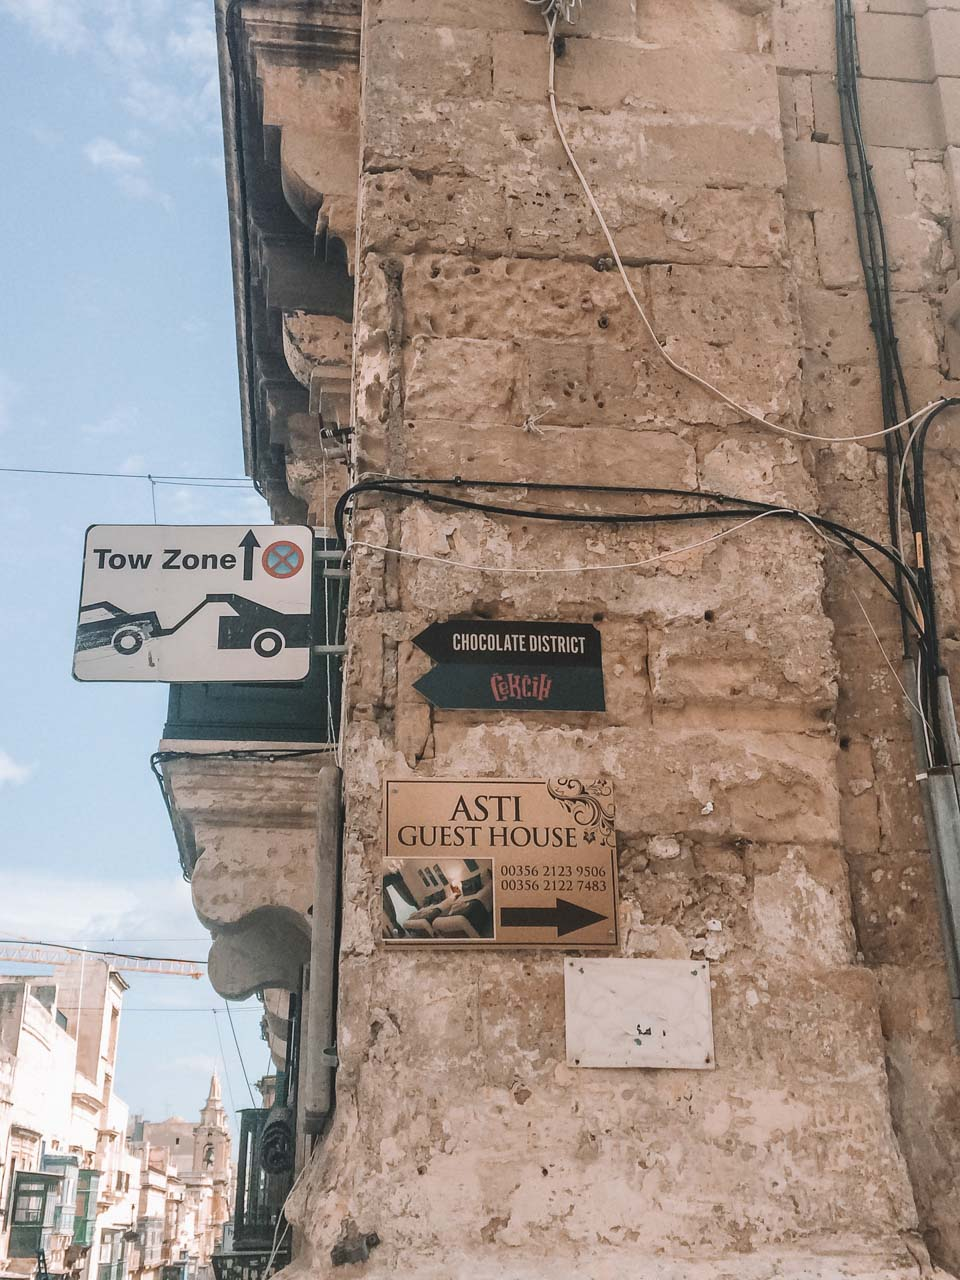 A street sign pointing to Chocolate District in Valletta, Malta